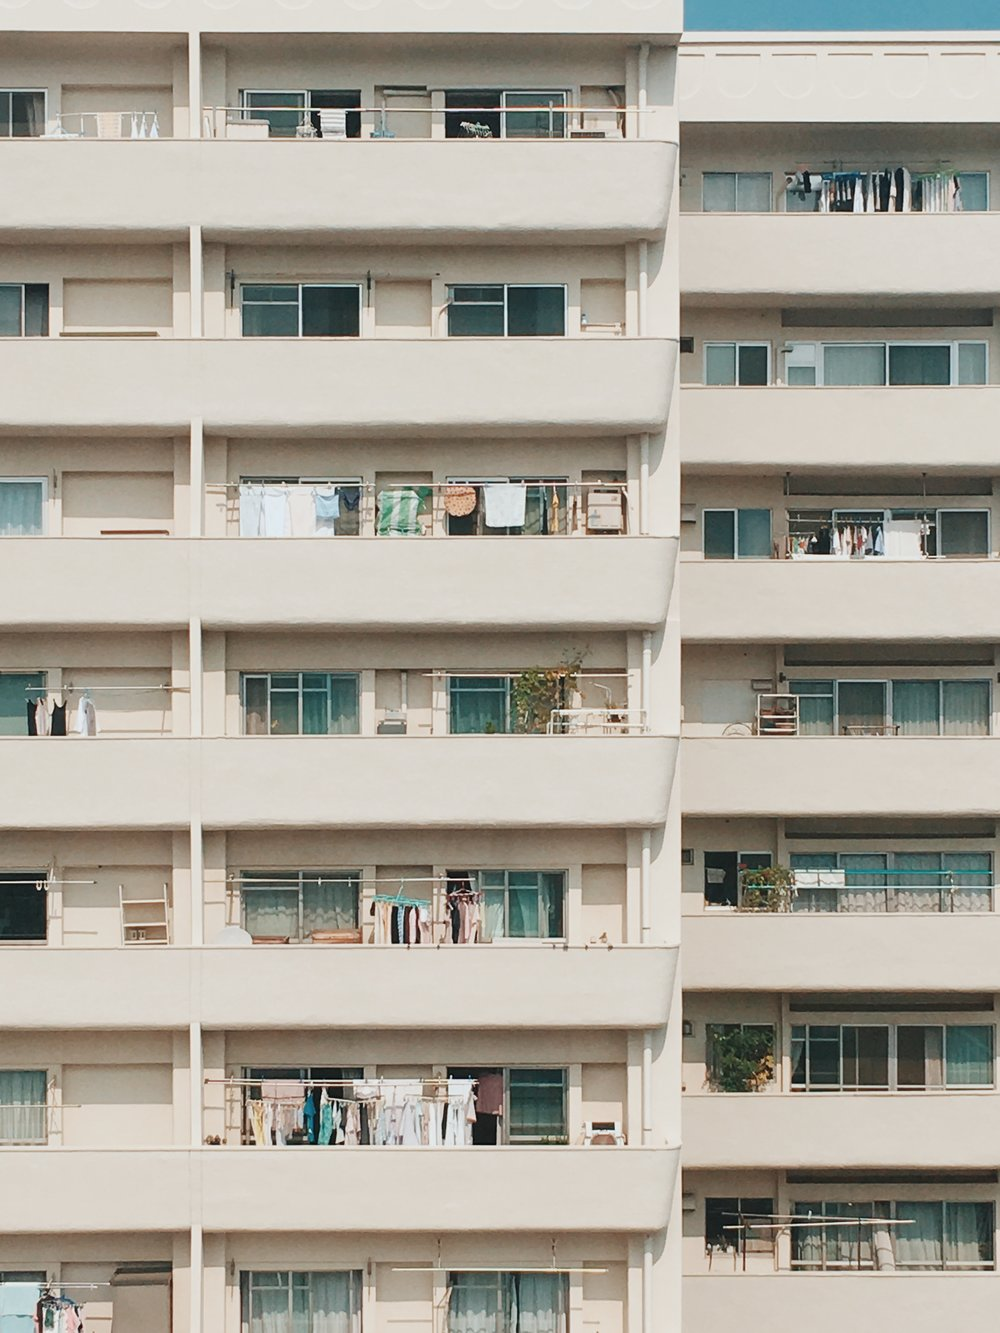 Apartment from a balcony, Tokyo